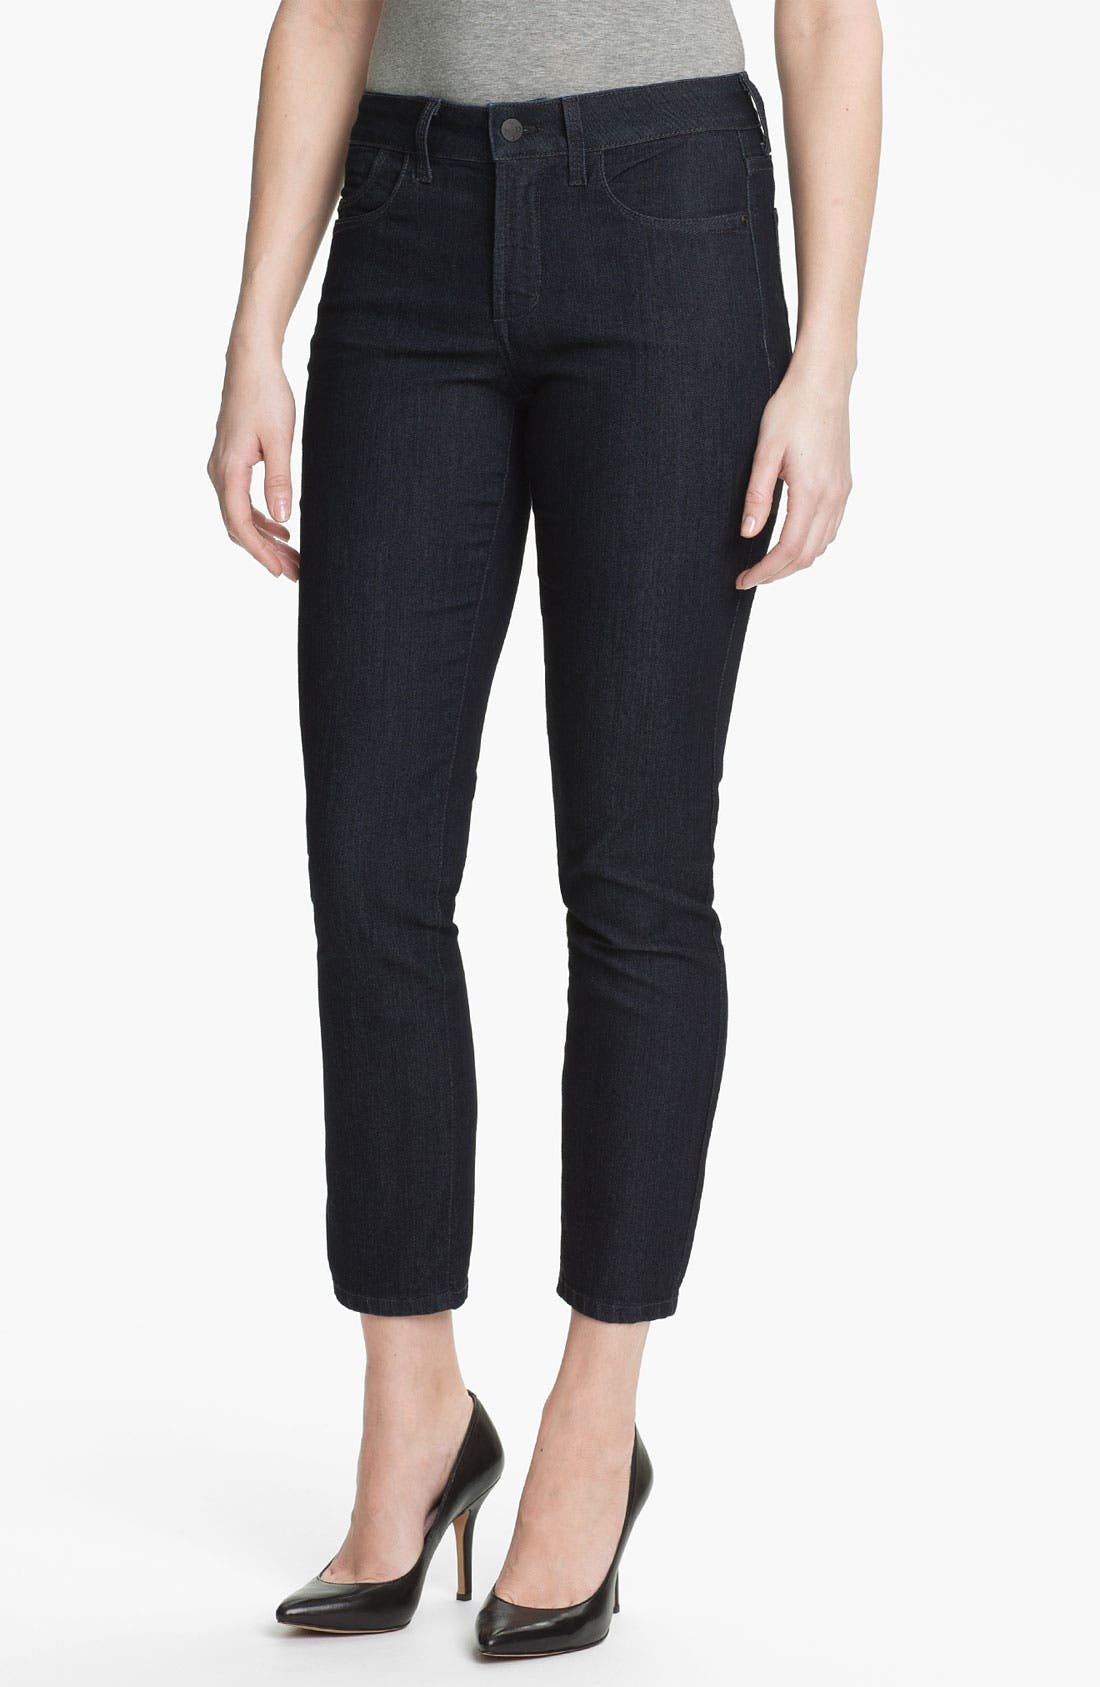 Alternate Image 1 Selected - NYDJ 'Alisha' Stretch Skinny Jeans (Petite)